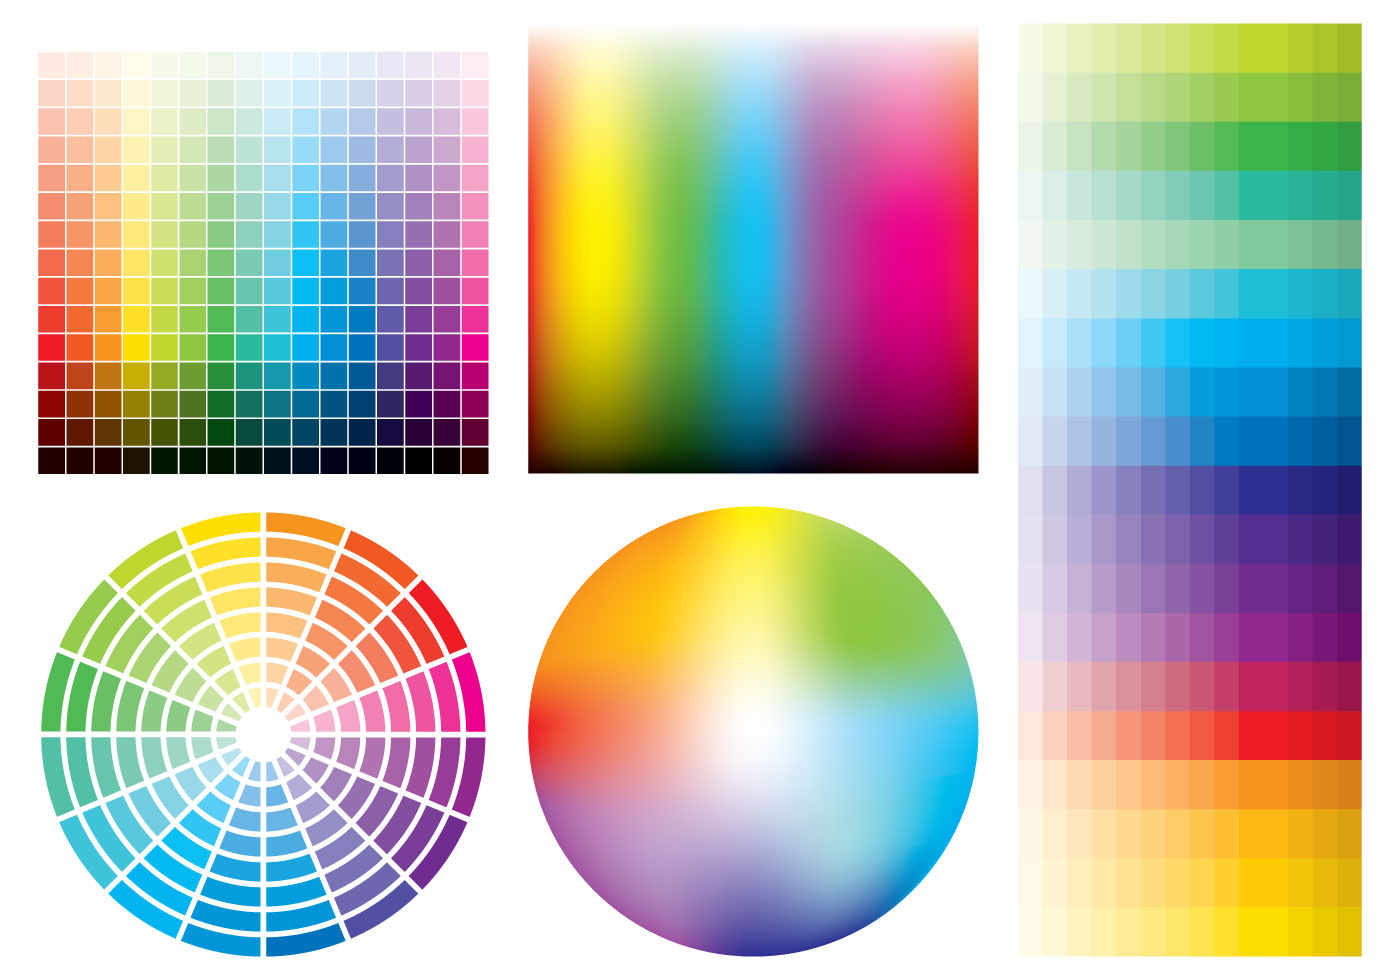 Download Free Vector Art, Stock Graphics & Images